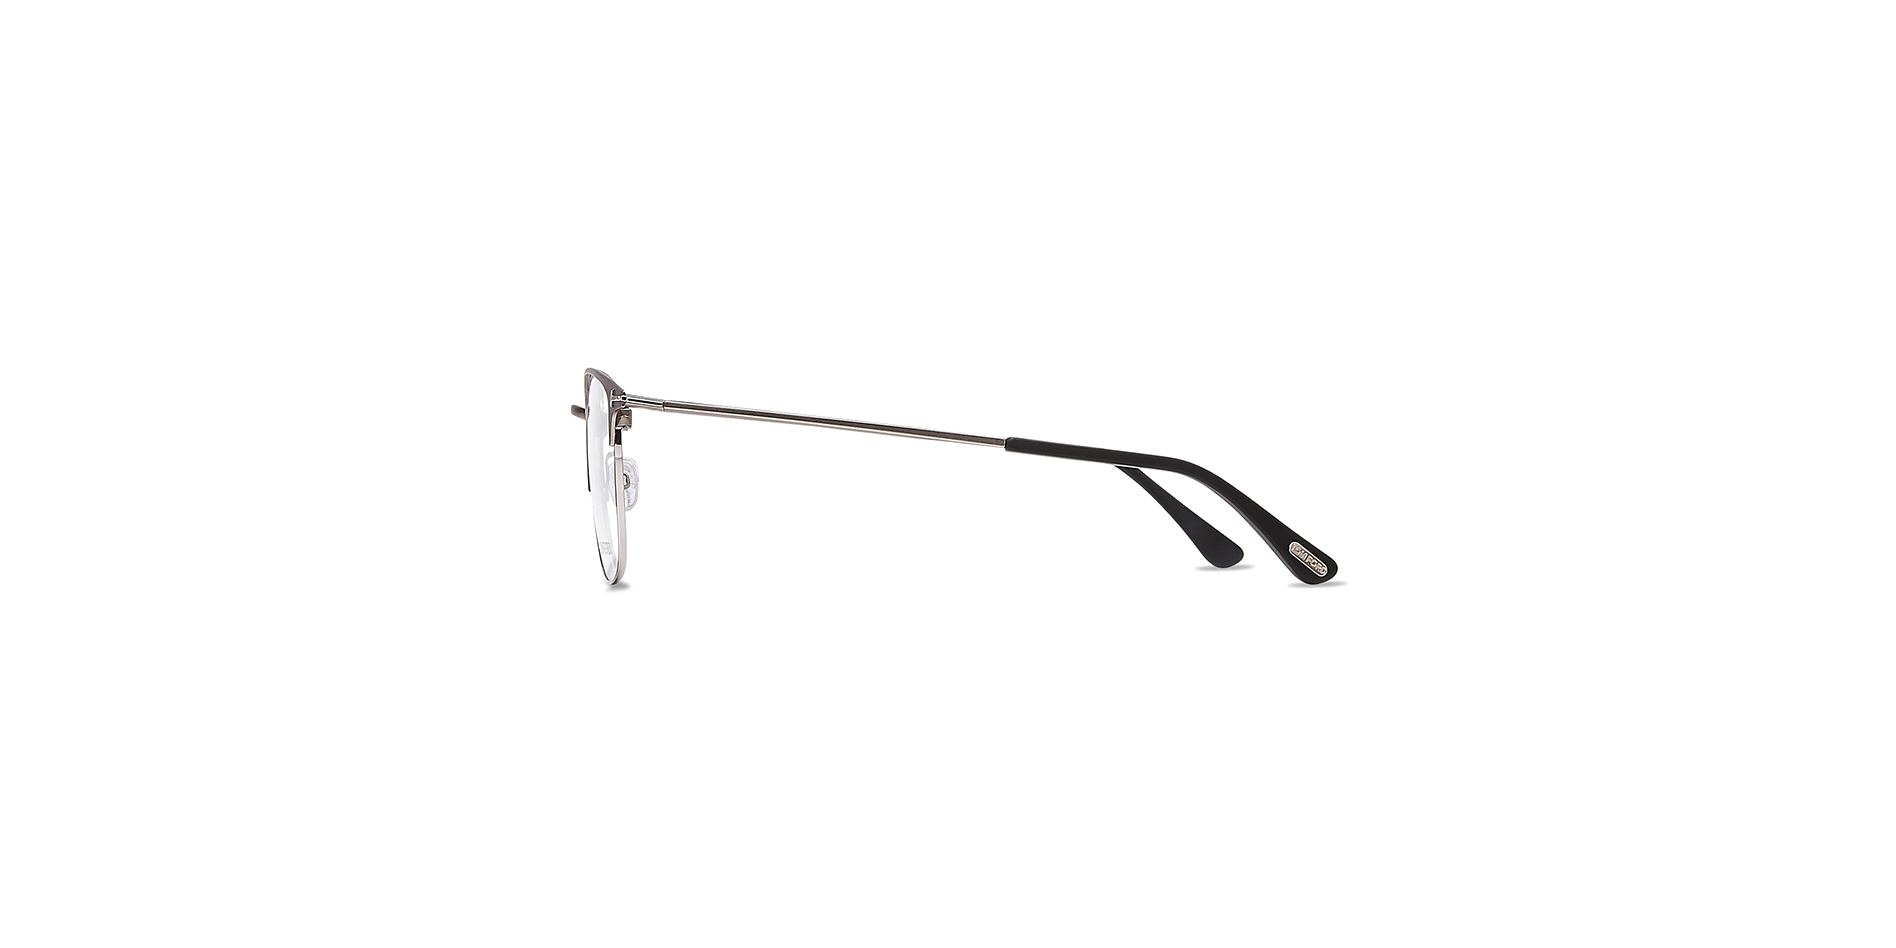 Modische Herren-Korrekturbrille aus Metall, Tom Ford, TF 5453